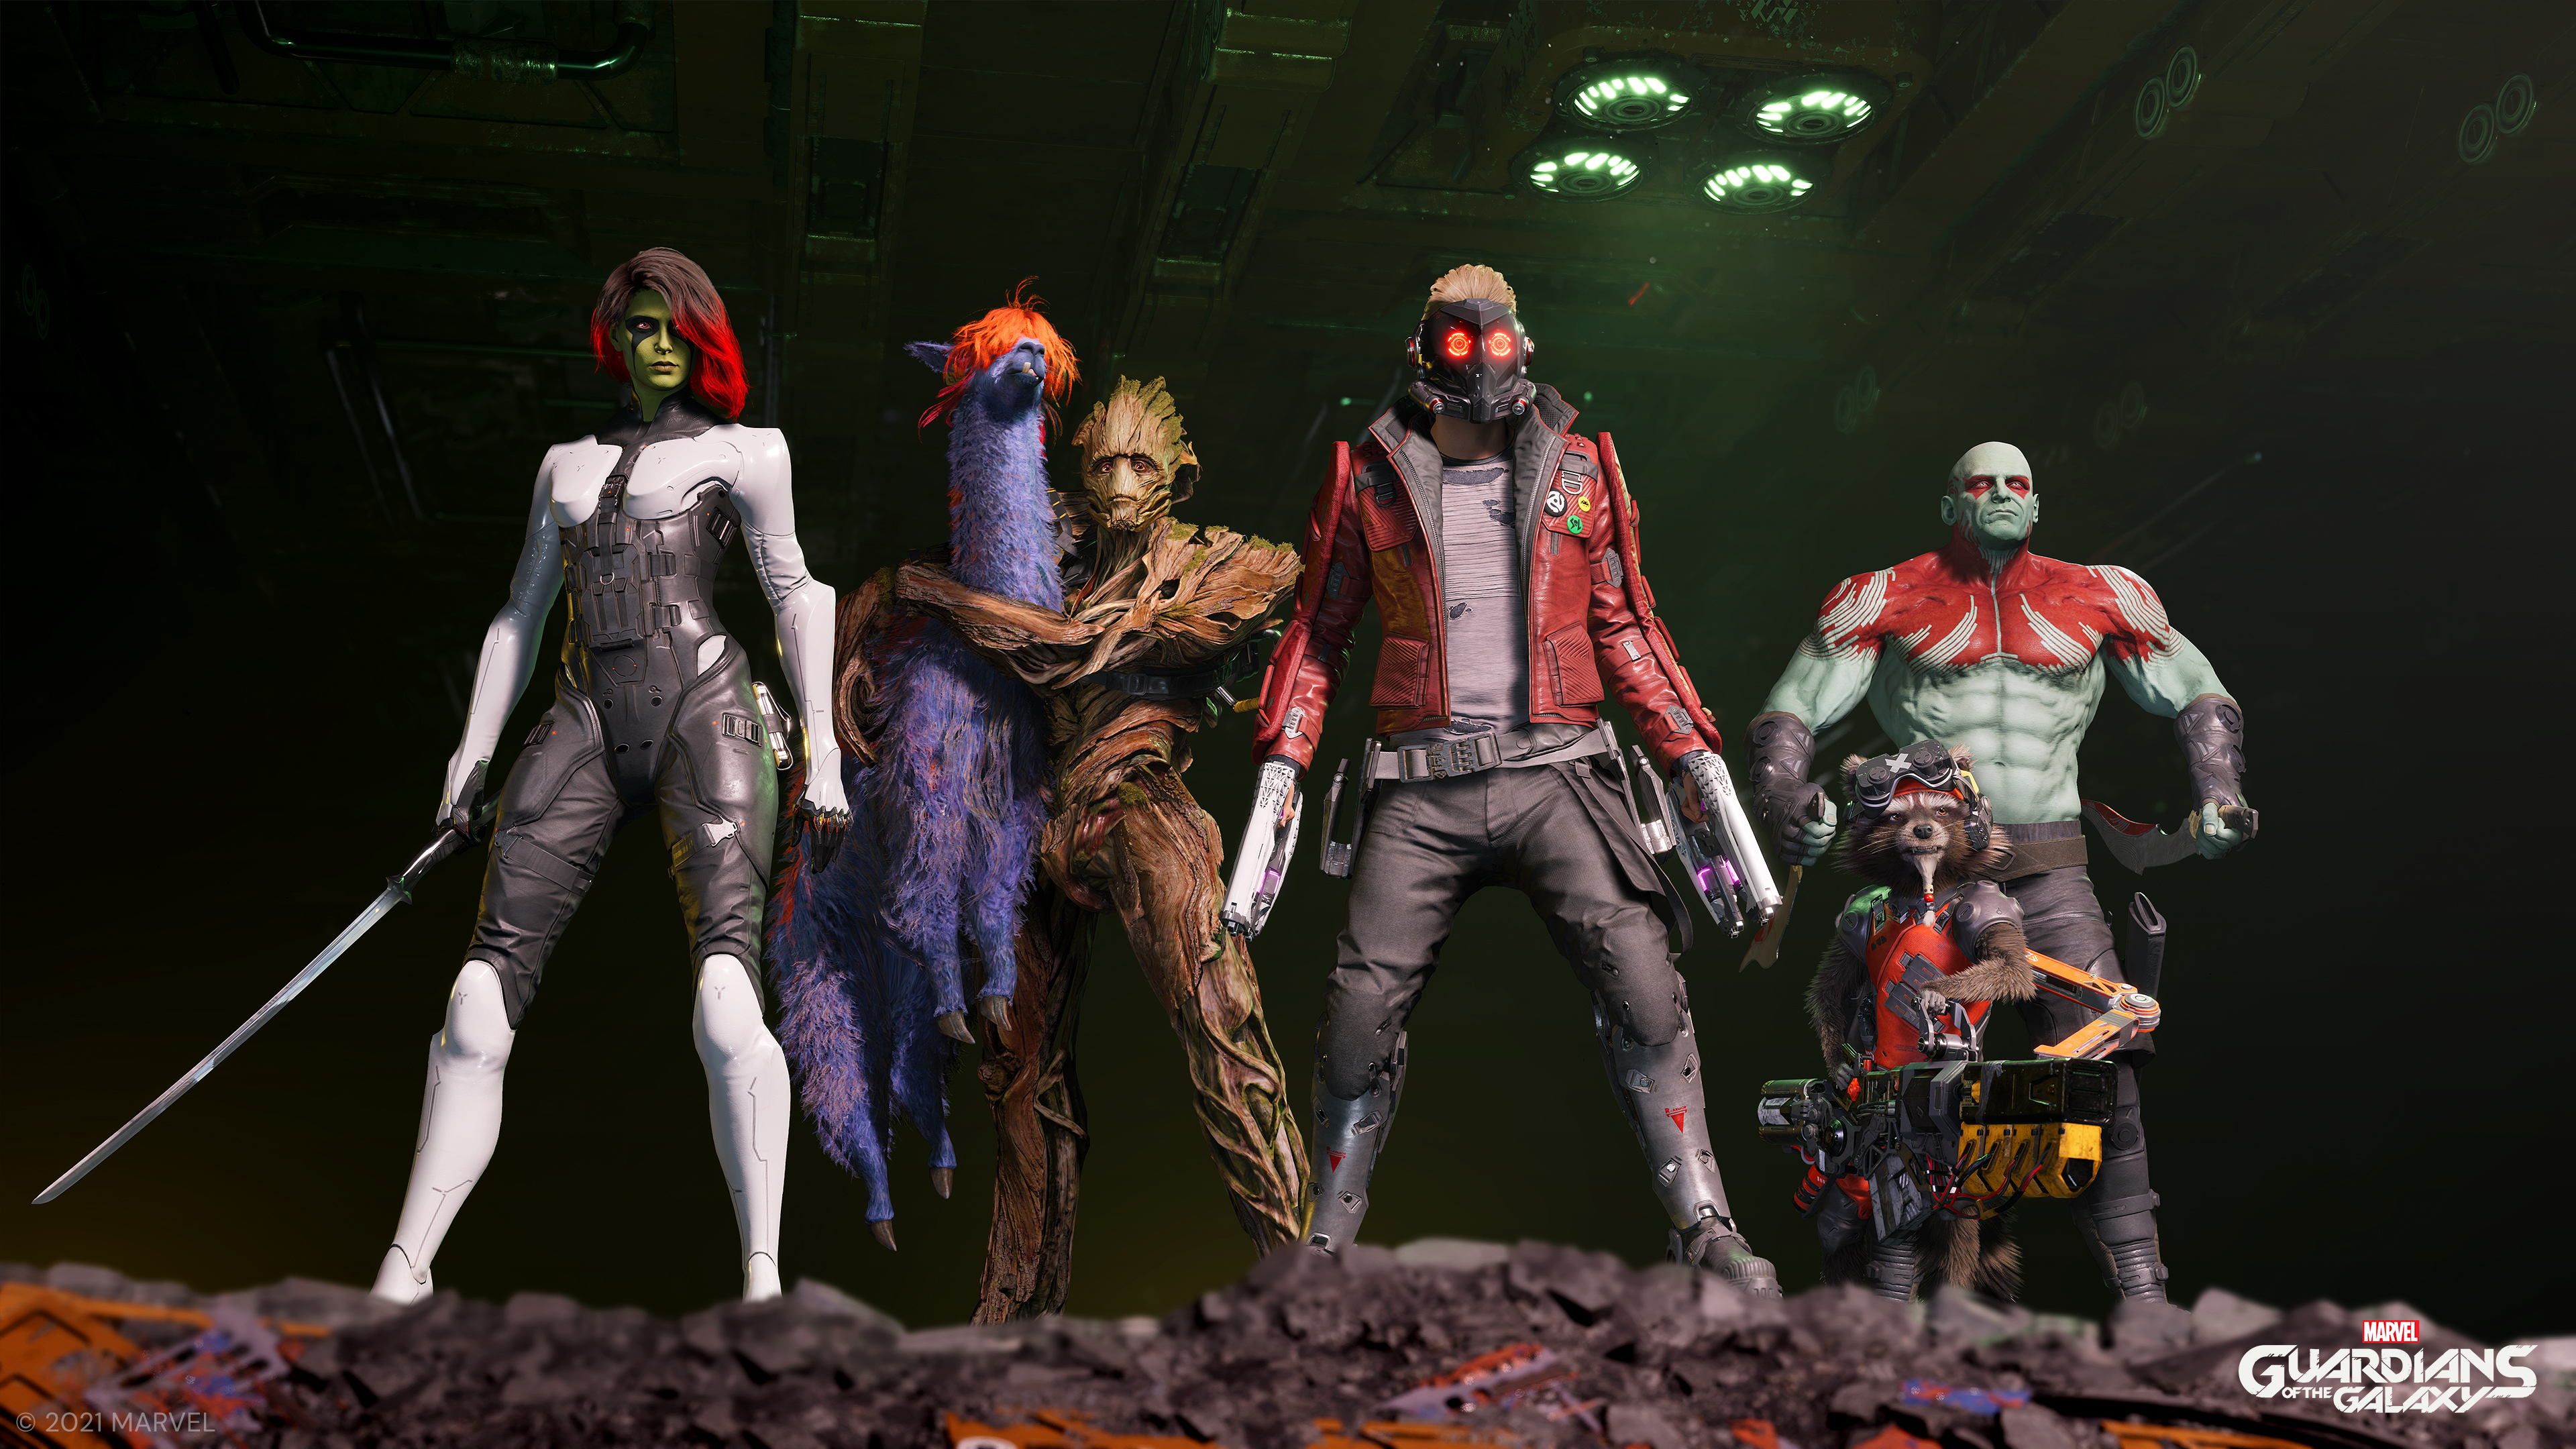 Guardians of the Galaxy Square Presents